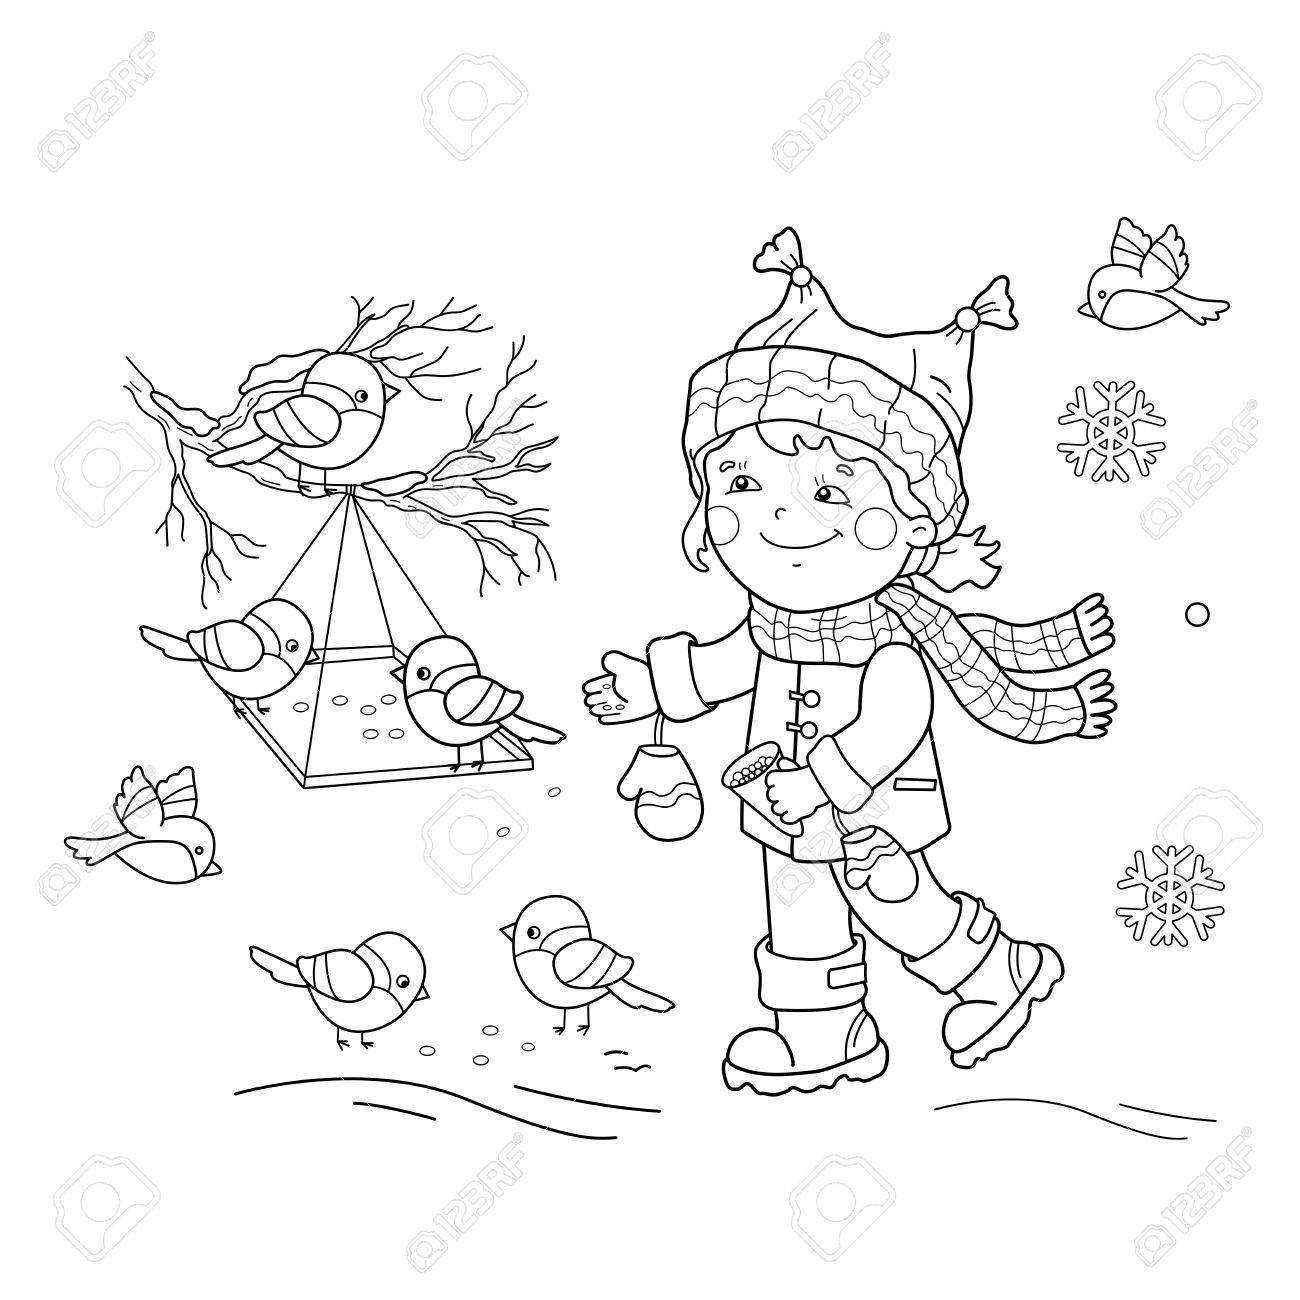 coloring page outline of feeding birds bird feeder winter